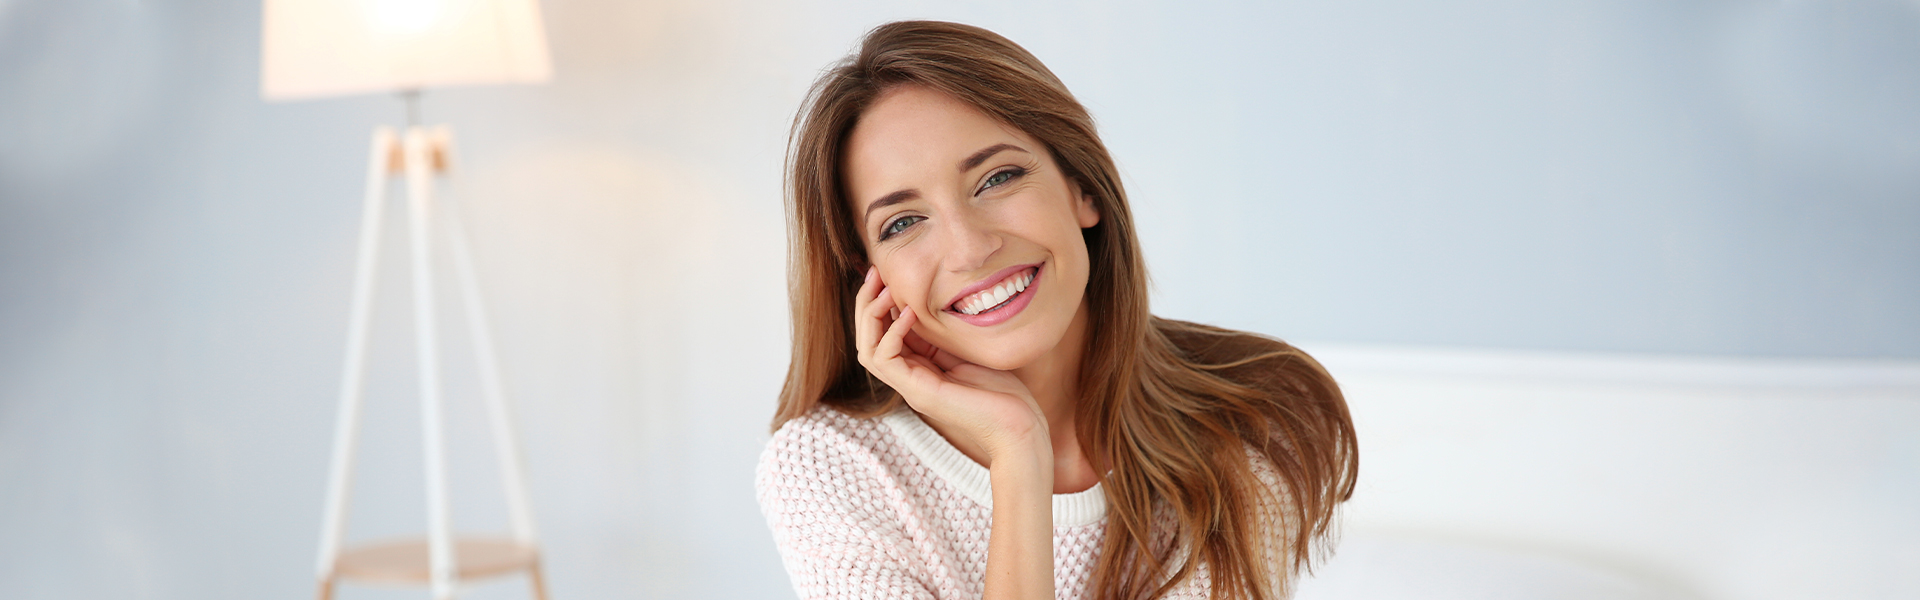 Ask Your Cosmetic Dentist In Calgary, AB About Veneers, Teeth Whitening And Other Popular Options